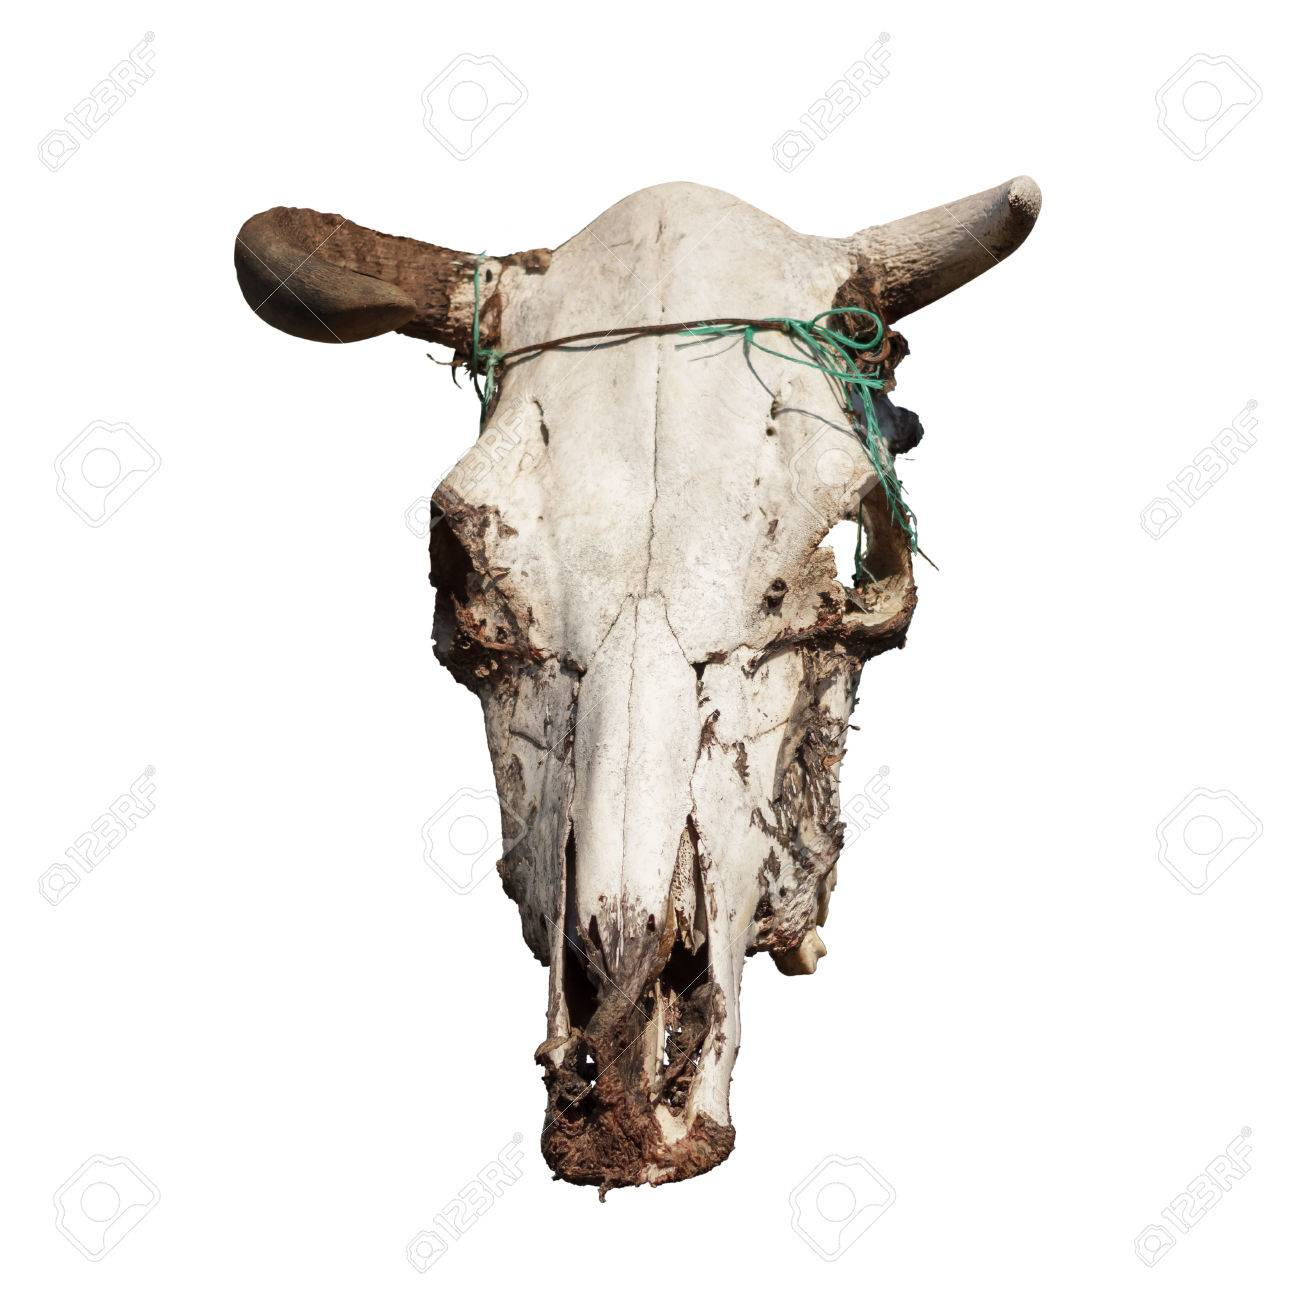 Cow Skull With Horns On White Stock Photo, Picture And Royalty Free ...